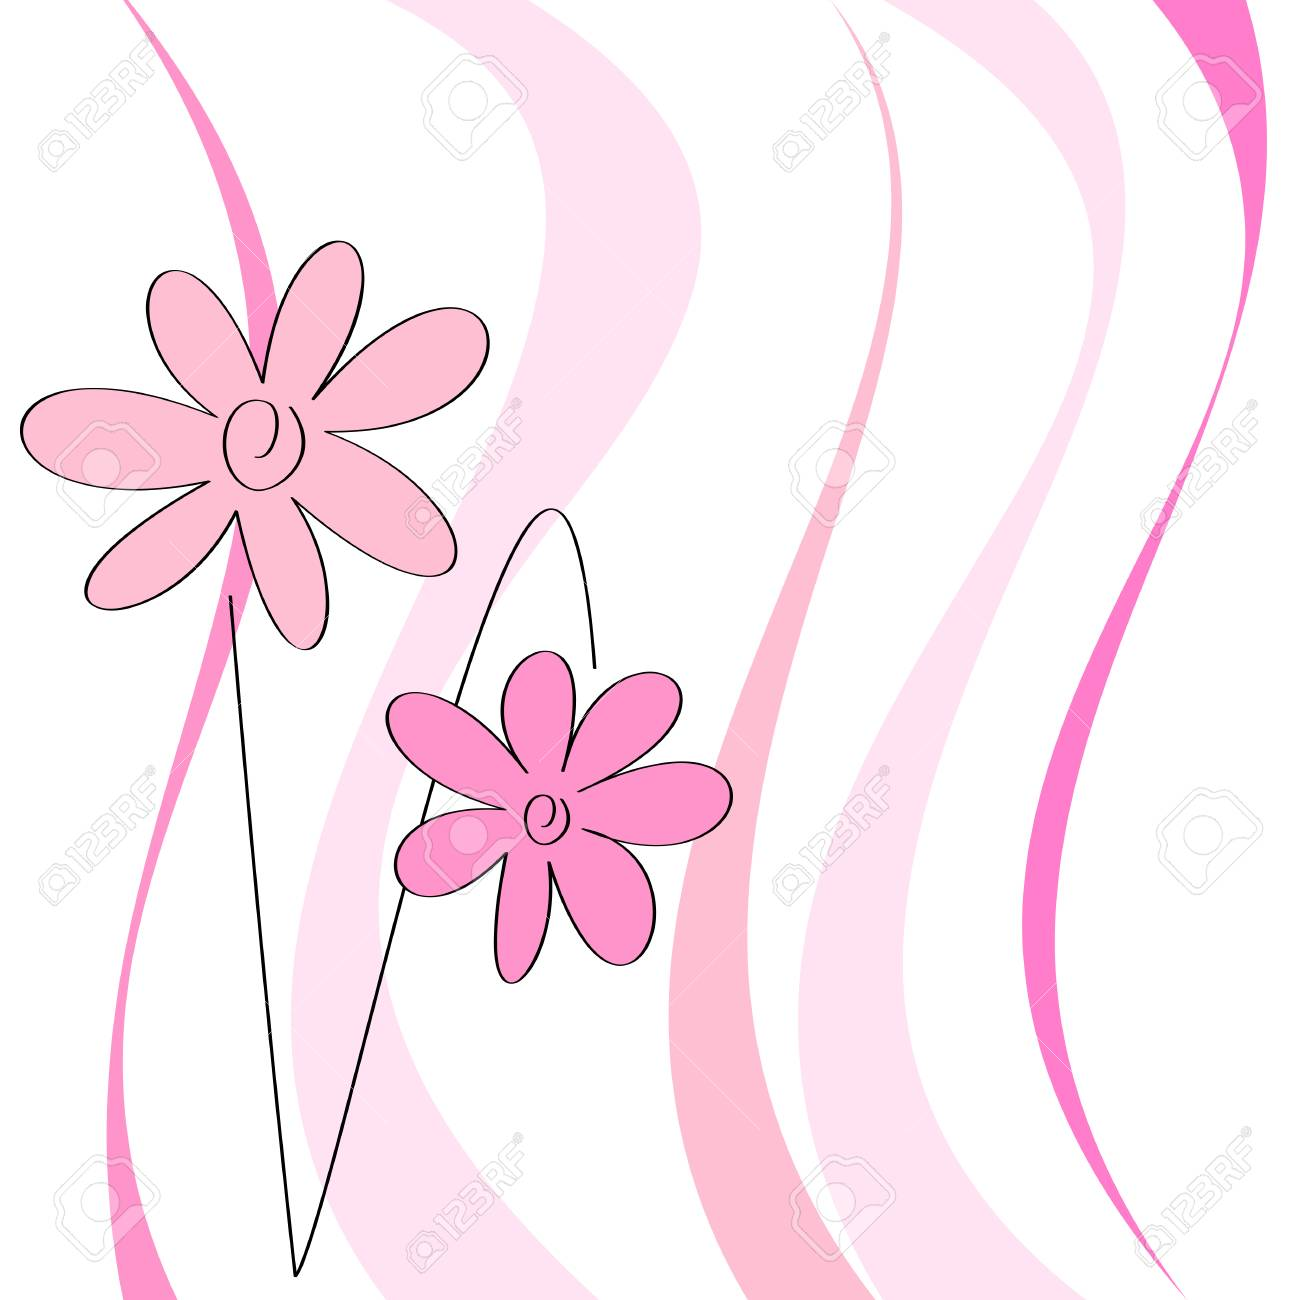 Greeting card with pink flowers, vector illustration Stock Vector - 5779822